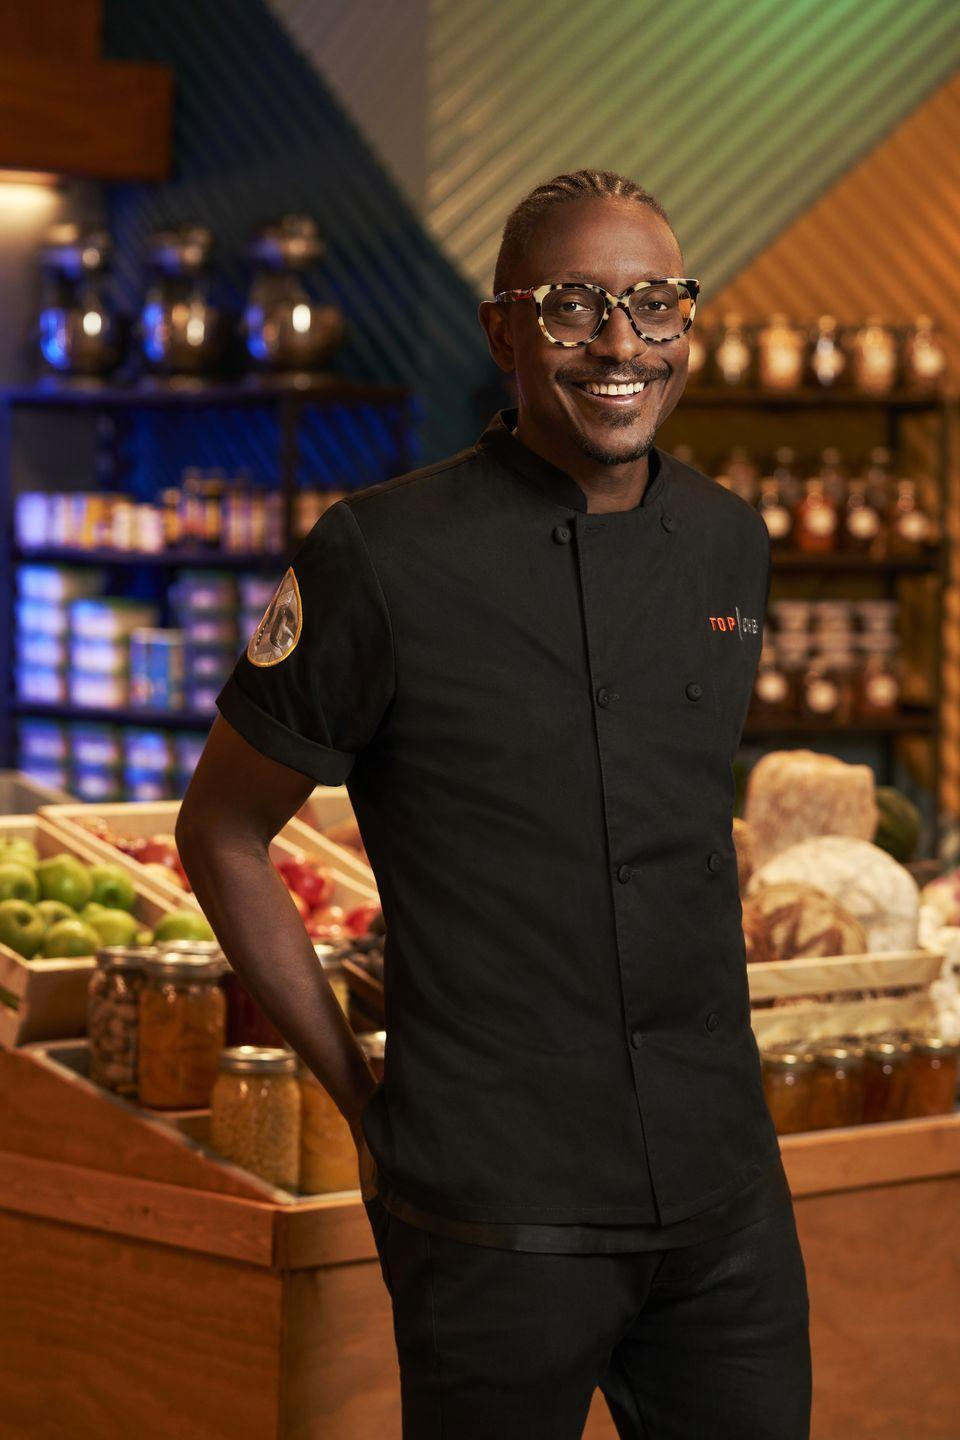 """<p>Gregory hadn't appeared on the program since his defeat in 2014, until he returned to compete for the title in season 17. The chef, who strongly pulls from his Haitian background, is planning on <a href=""""https://heavy.com/entertainment/2020/03/top-chef-gregory-gourdet-restaurant/"""" rel=""""nofollow noopener"""" target=""""_blank"""" data-ylk=""""slk:opening a restaurant in 2021"""" class=""""link rapid-noclick-resp"""">opening a restaurant in 2021</a>. </p>"""